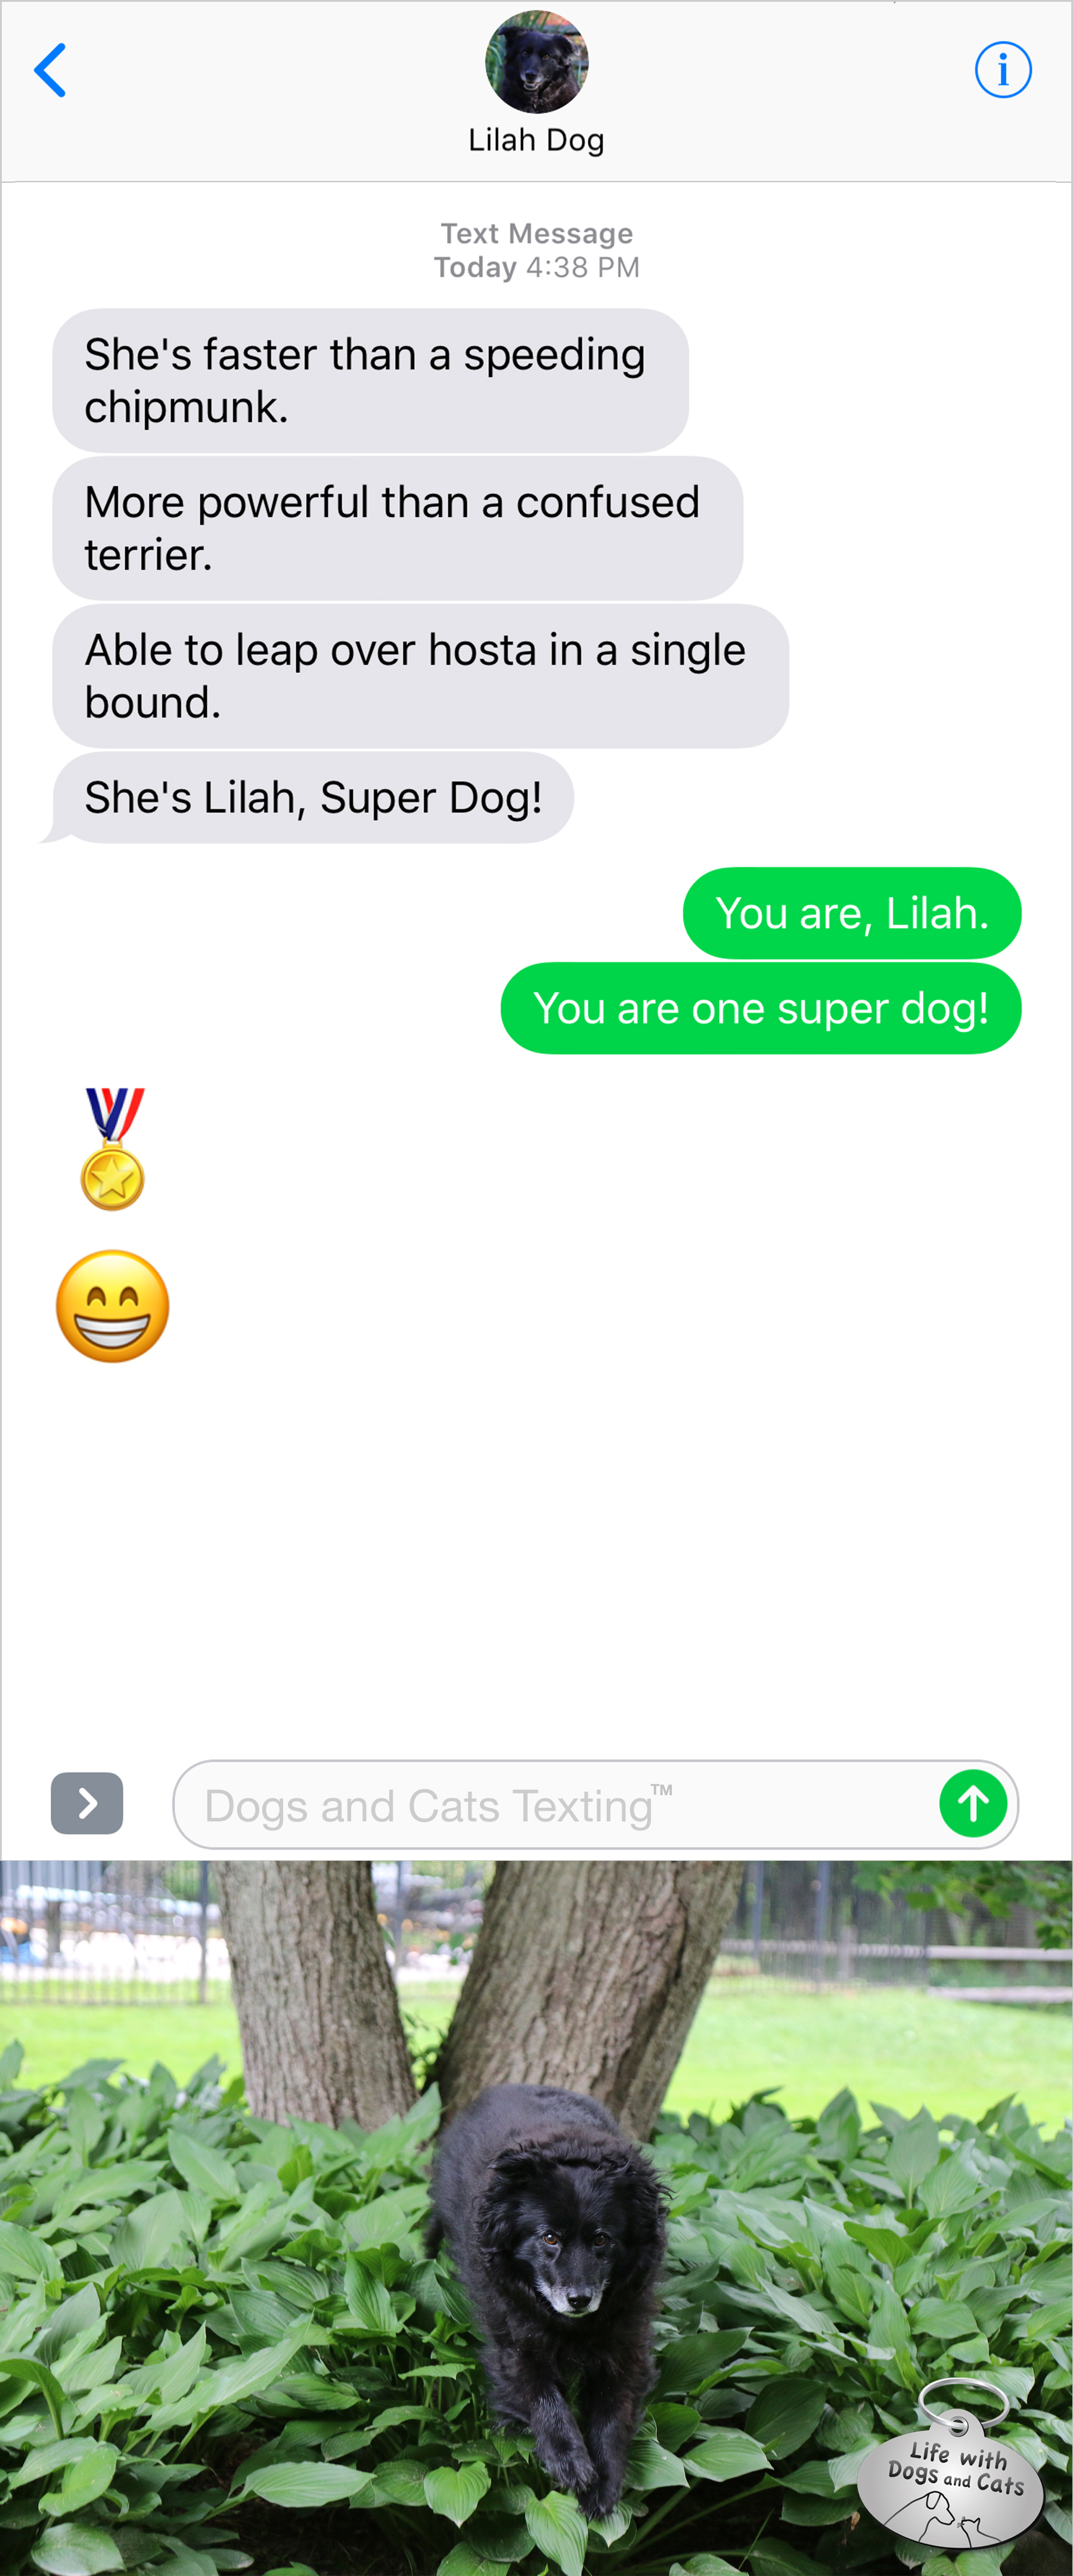 #TextFromDog She's faster than a speeding chipmunk. More powerful than a confused terrier. Able to leap over hosta in a single bound. She's Lilah, Super Dog! Me: You are, Lilah! You are one super dog!